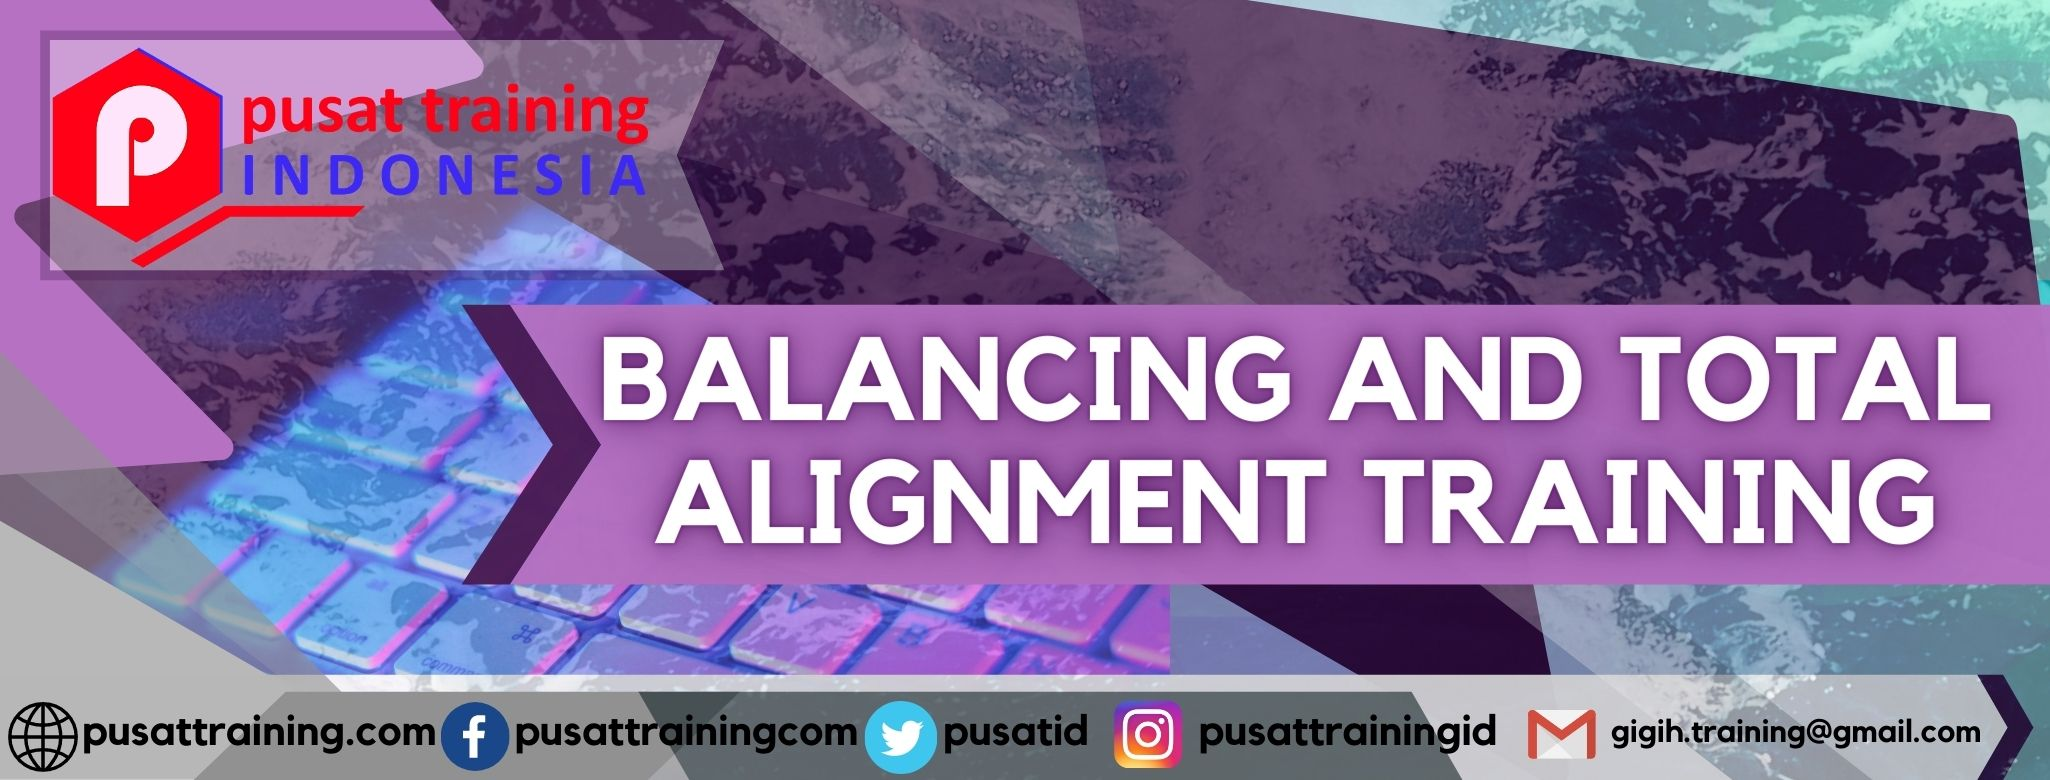 BALANCING AND TOTAL ALIGNMENT TRAINING